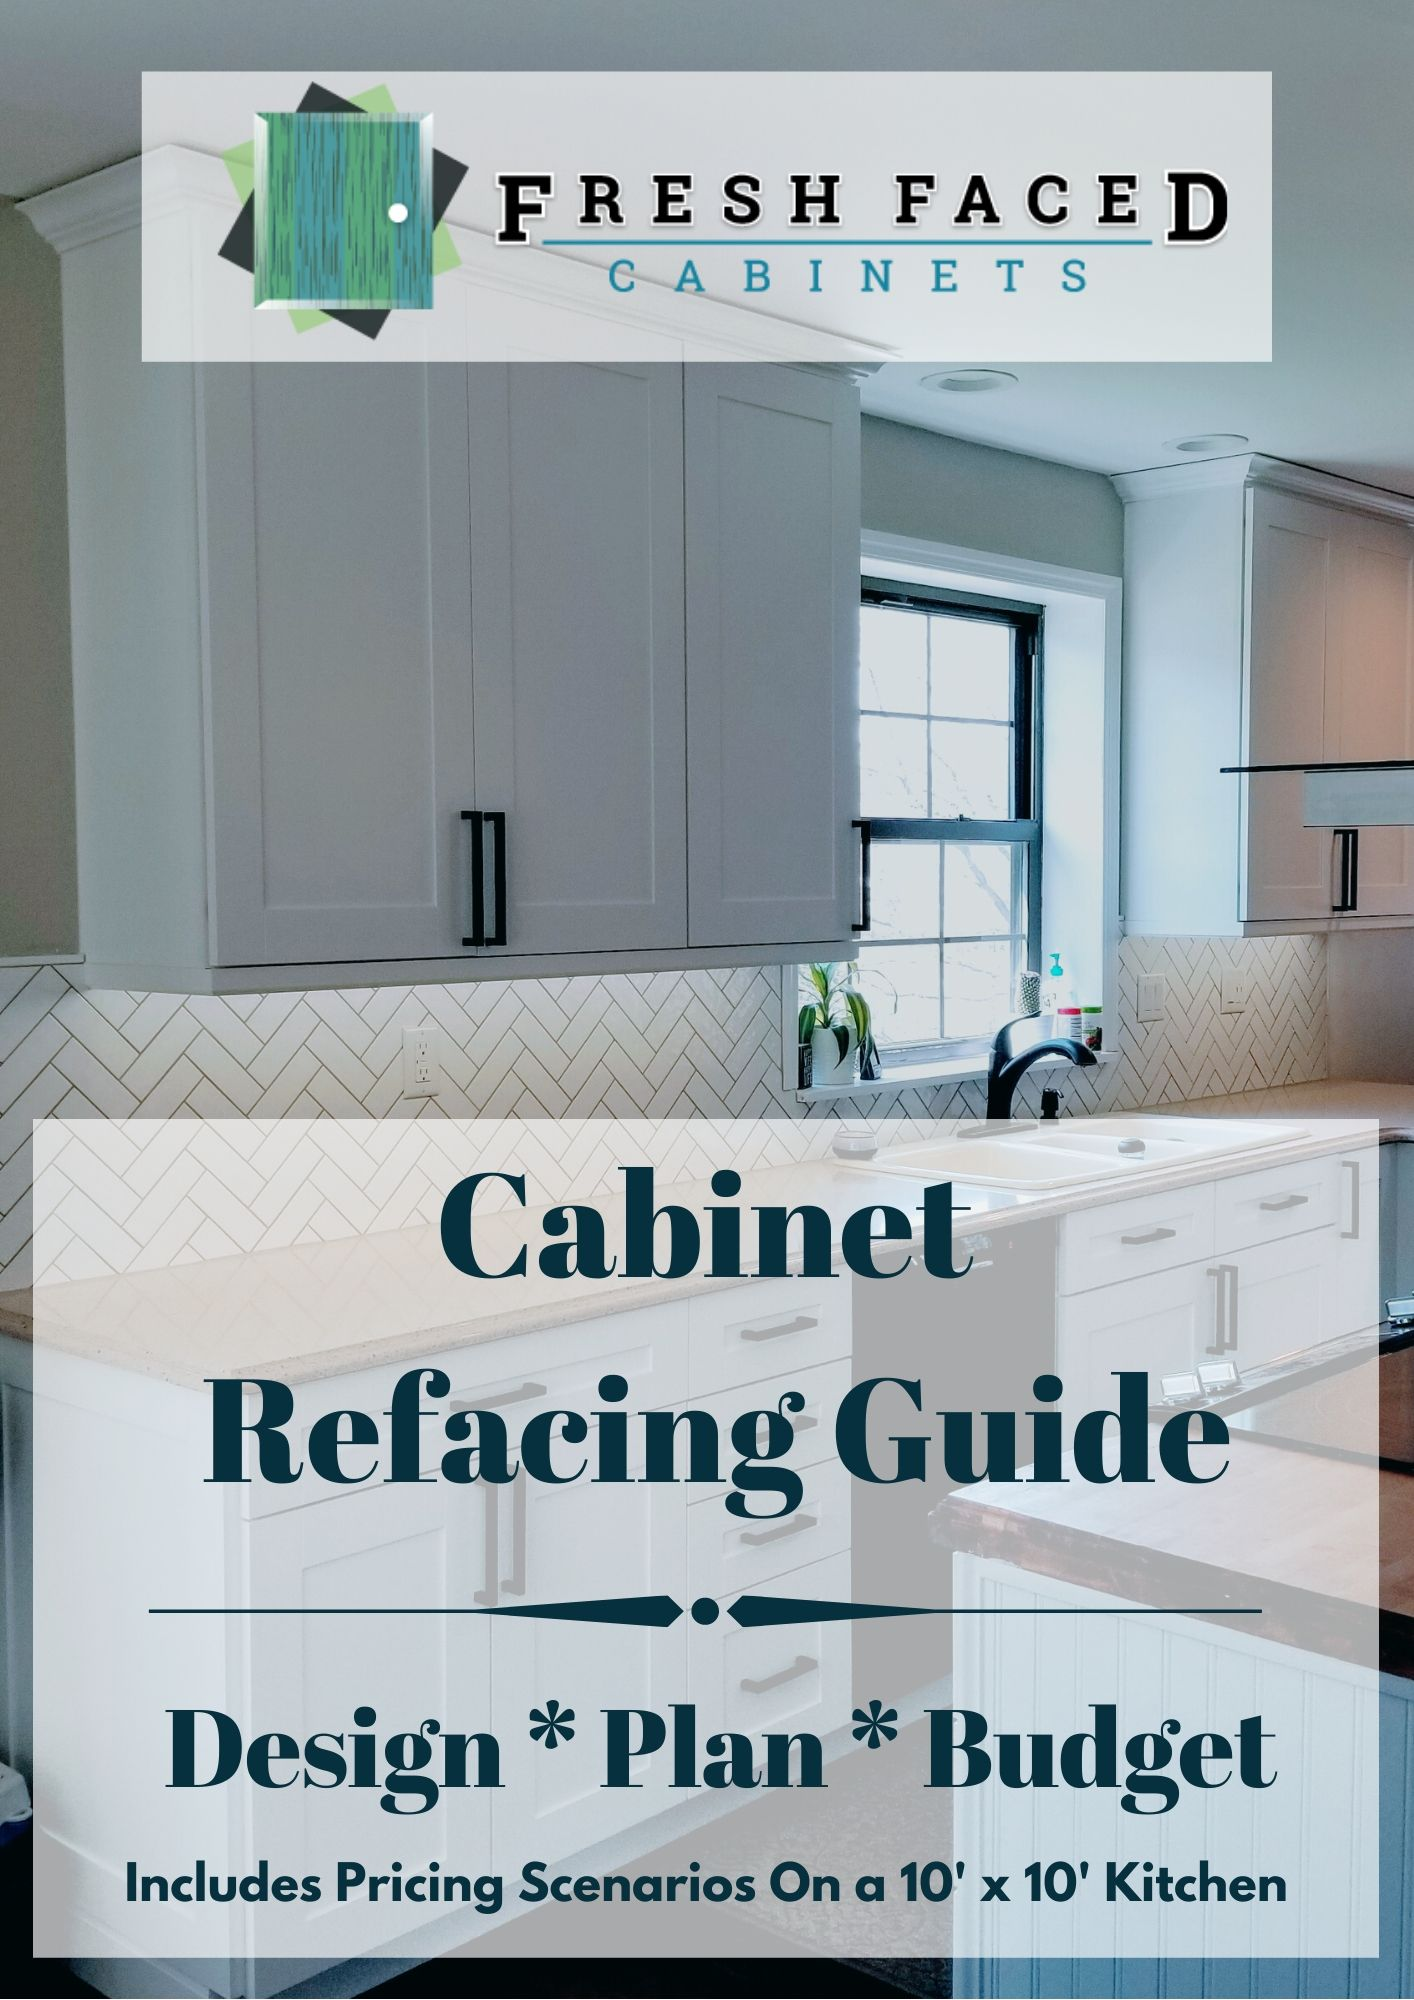 Cabinet Refacing Guide Cover